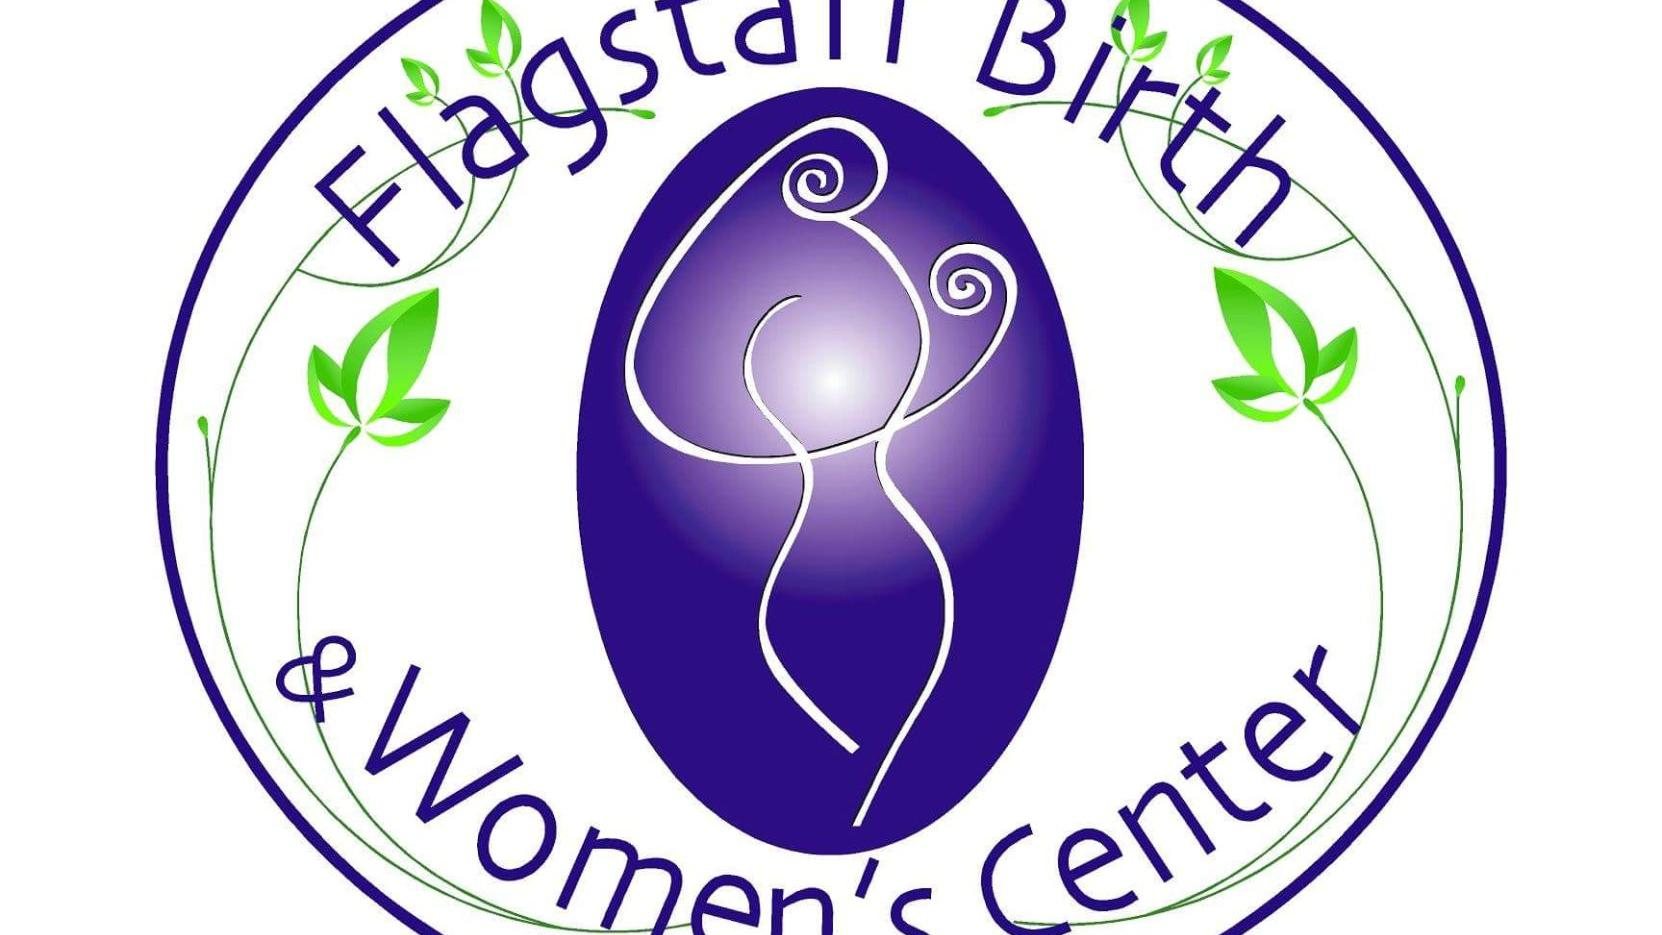 women central care The women's center of orlando is an obgyn in orange, osceola and seminole counties offering the finest in women's health care in central florida.